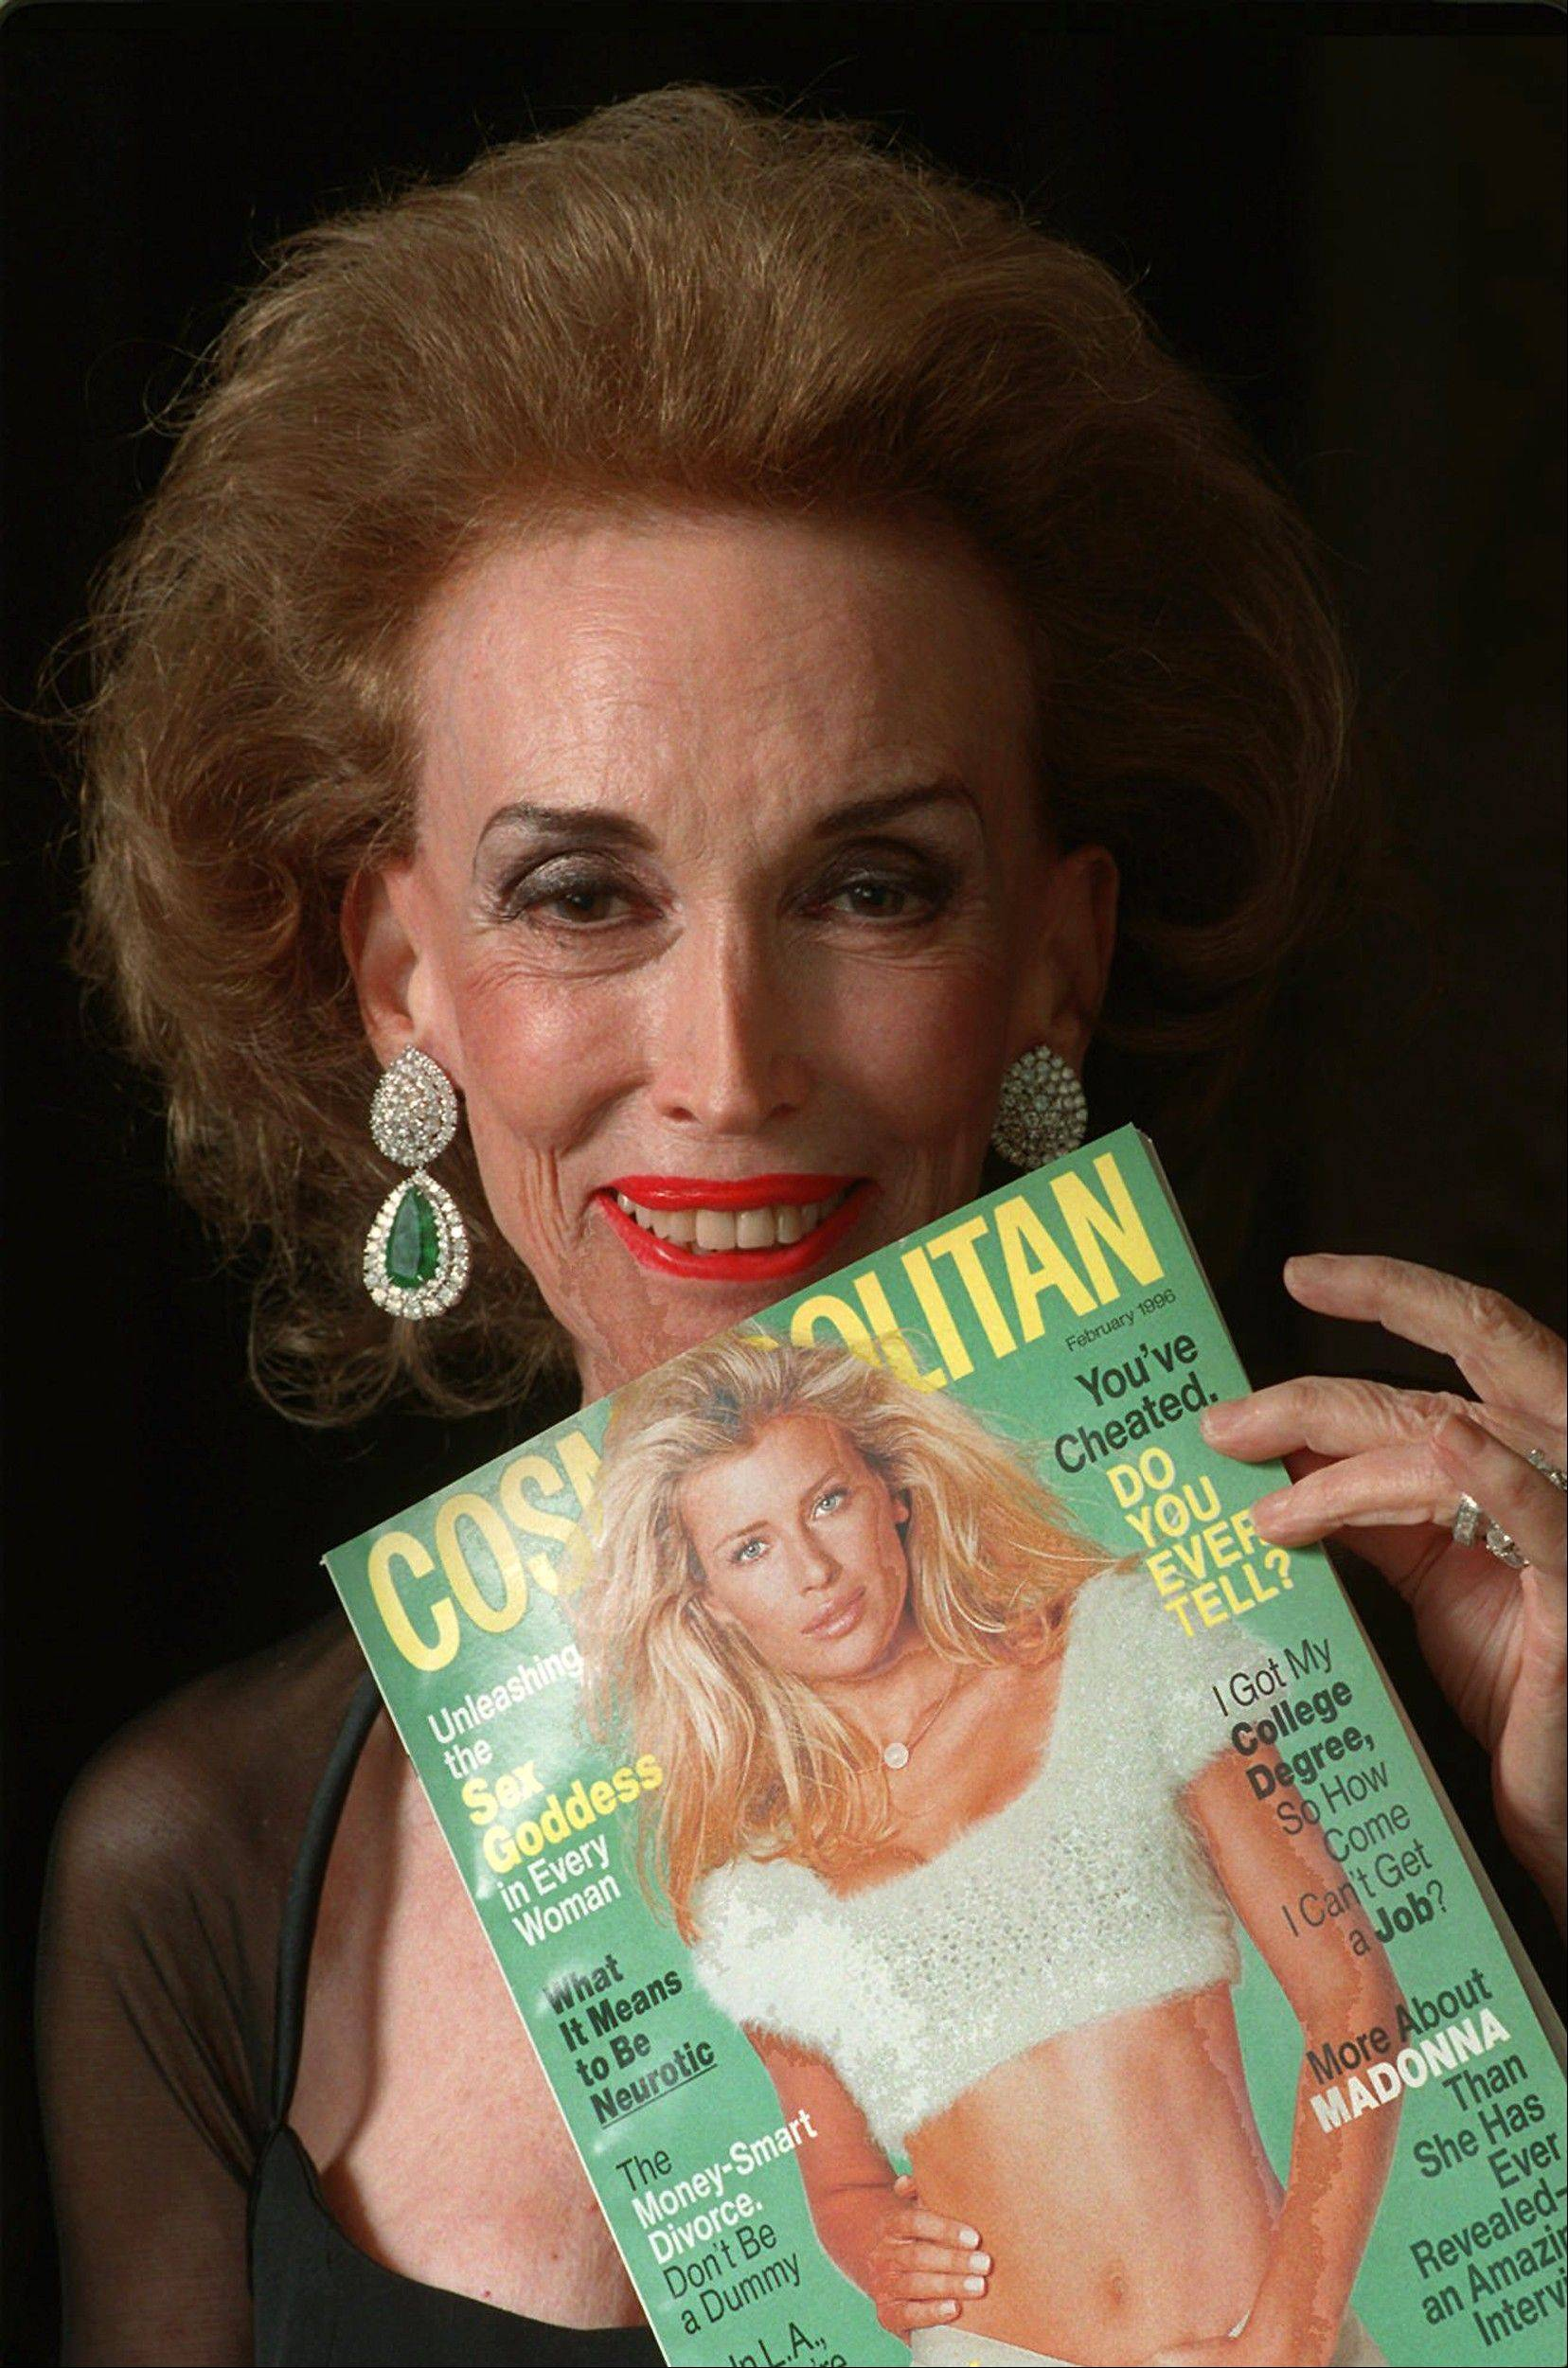 Cosmo editor Helen Gurley Brown dies at 90